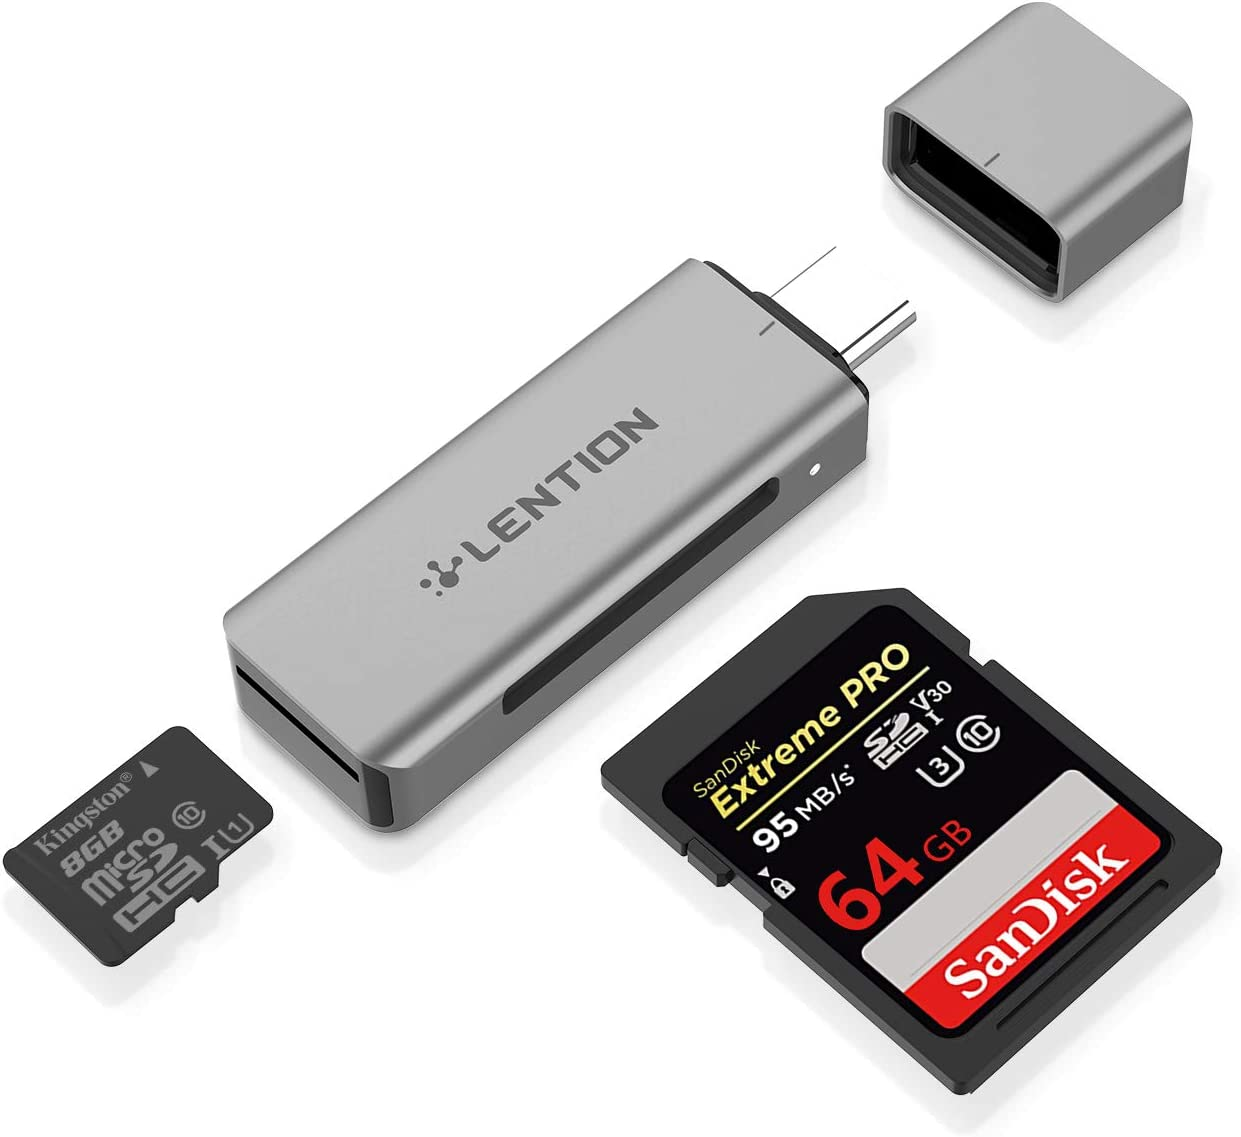 LENTION USB C to SD/Micro SD Card Reader, Type C SD 3.0 Card Adapter Compatible 2020-2016 MacBook Pro 13/15/16, New Mac Air/iPad Pro/Surface, Samsung S20/S10/S9/S8/Plus/Note, More (CB-C7, Space Gray)